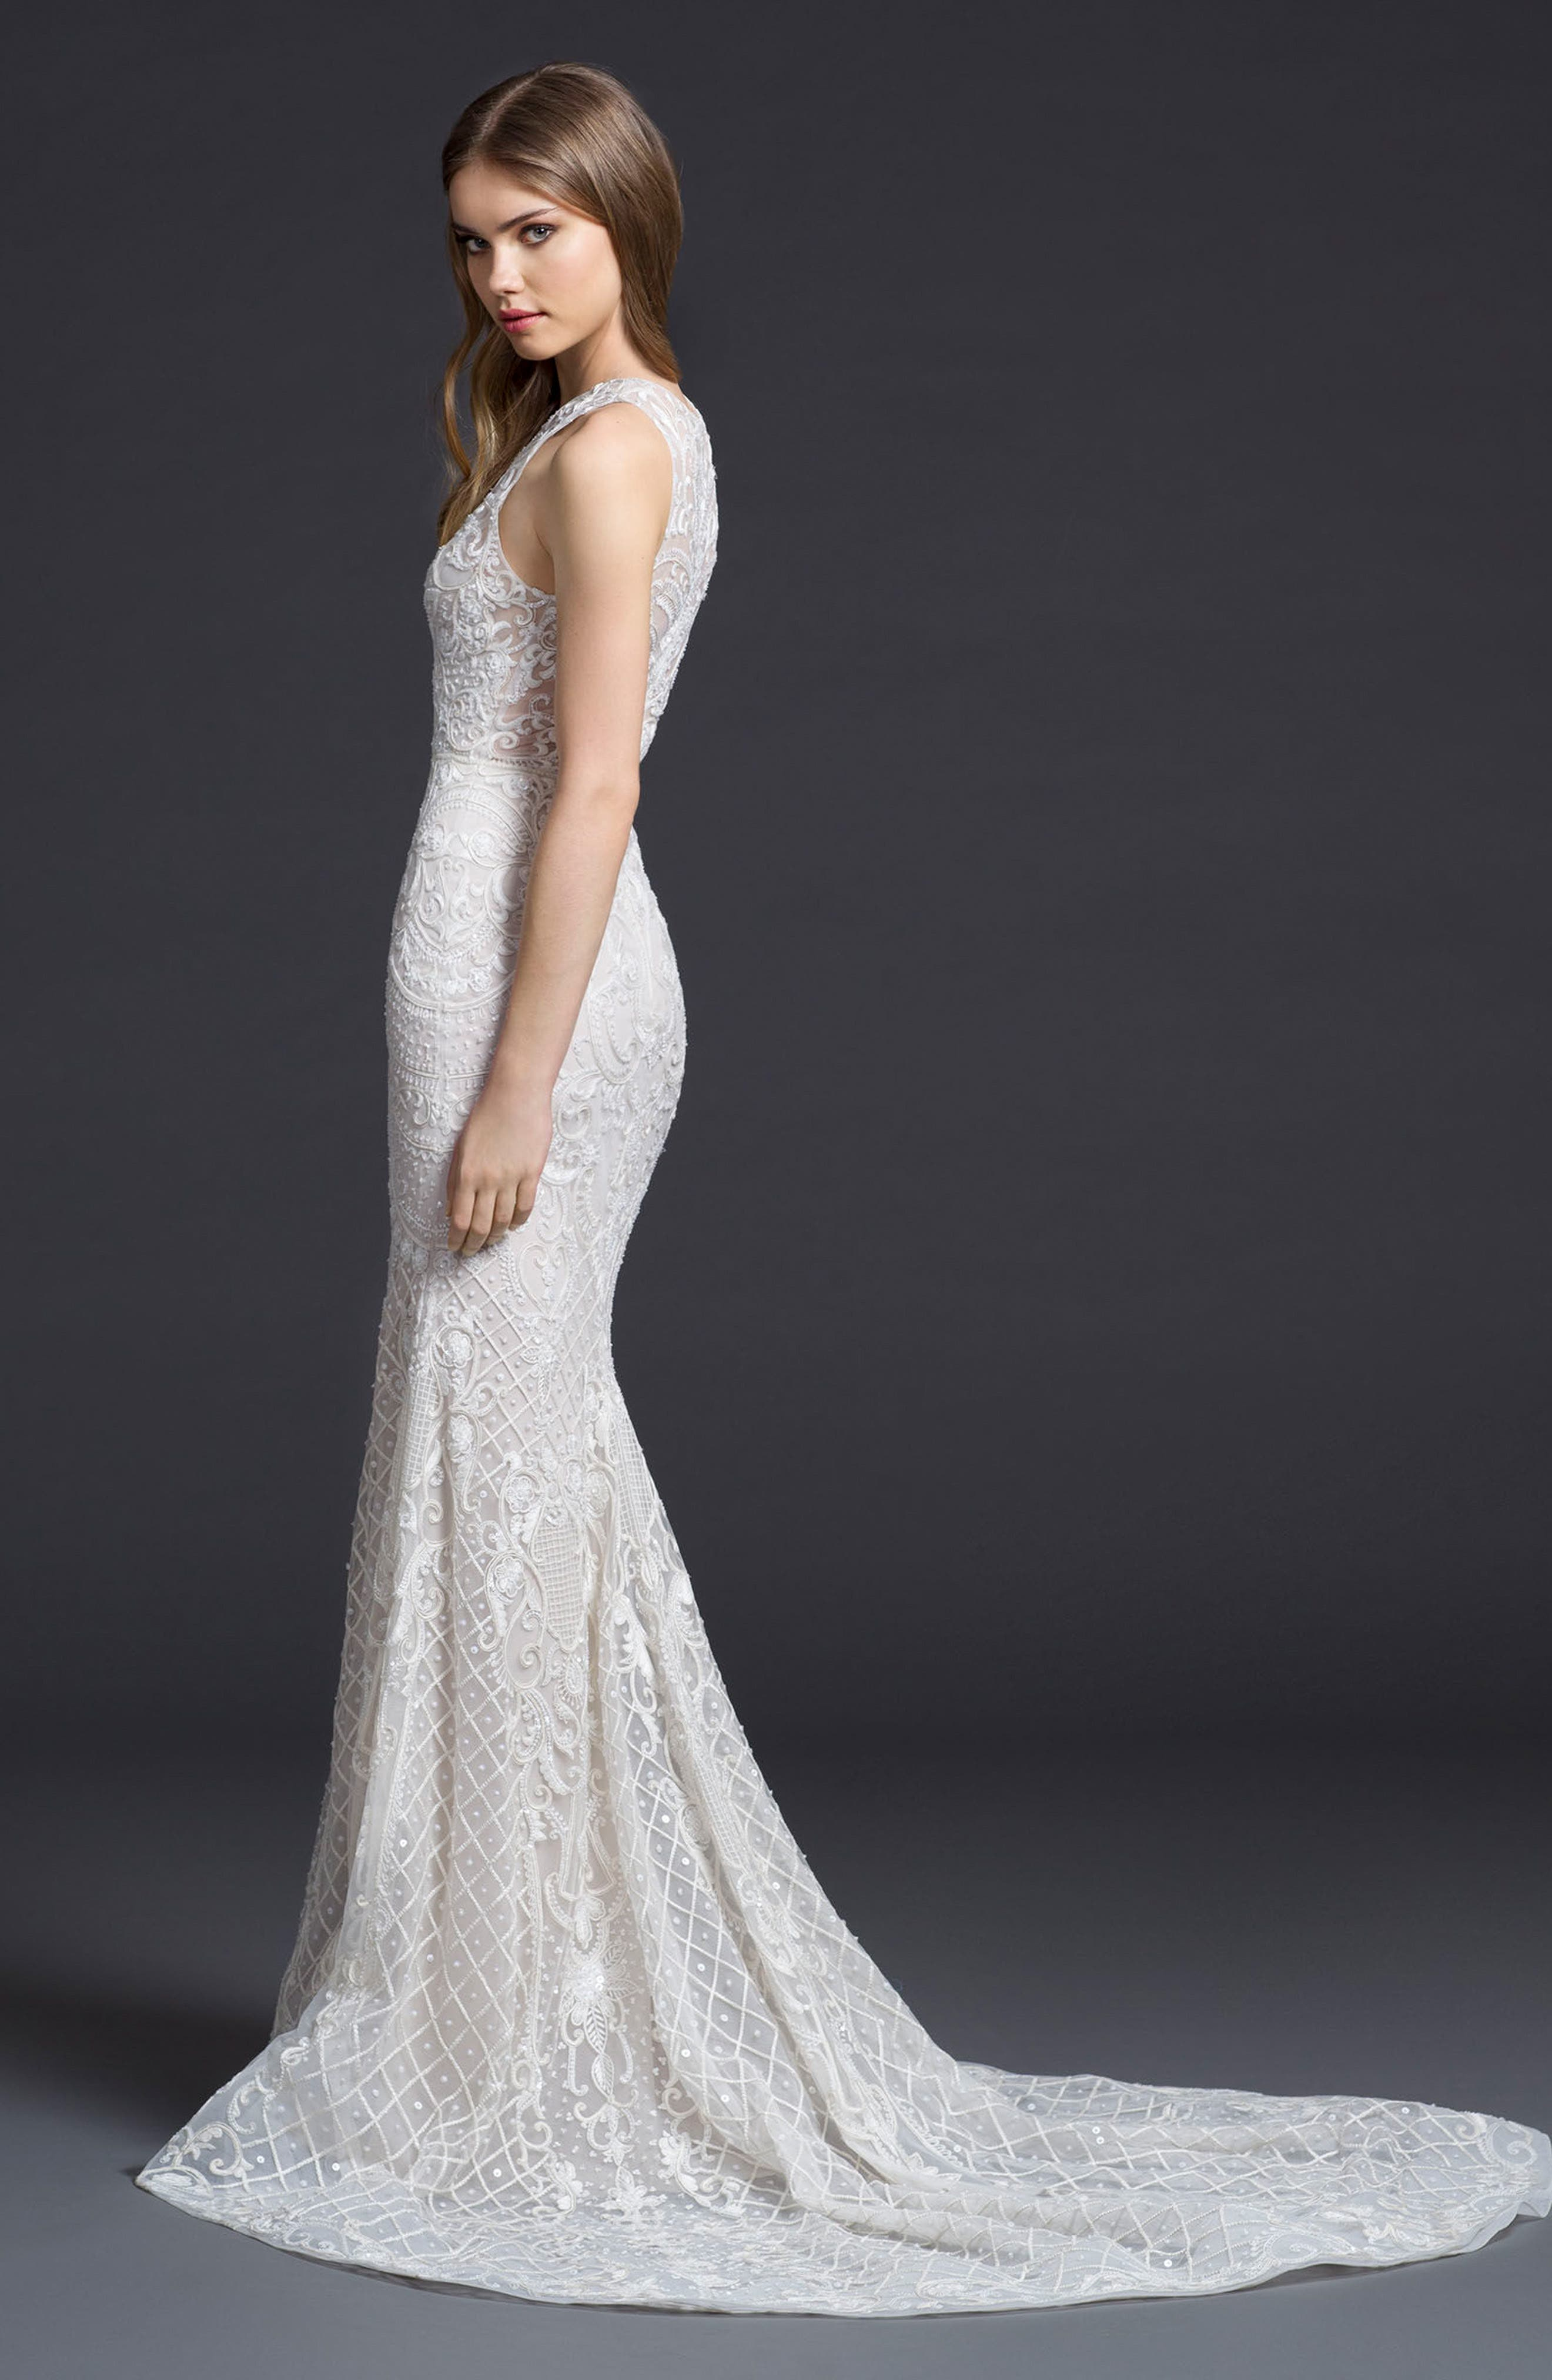 Embroidered Chiffon Trumpet Gown,                             Alternate thumbnail 2, color,                             Ivory/ Cashmere